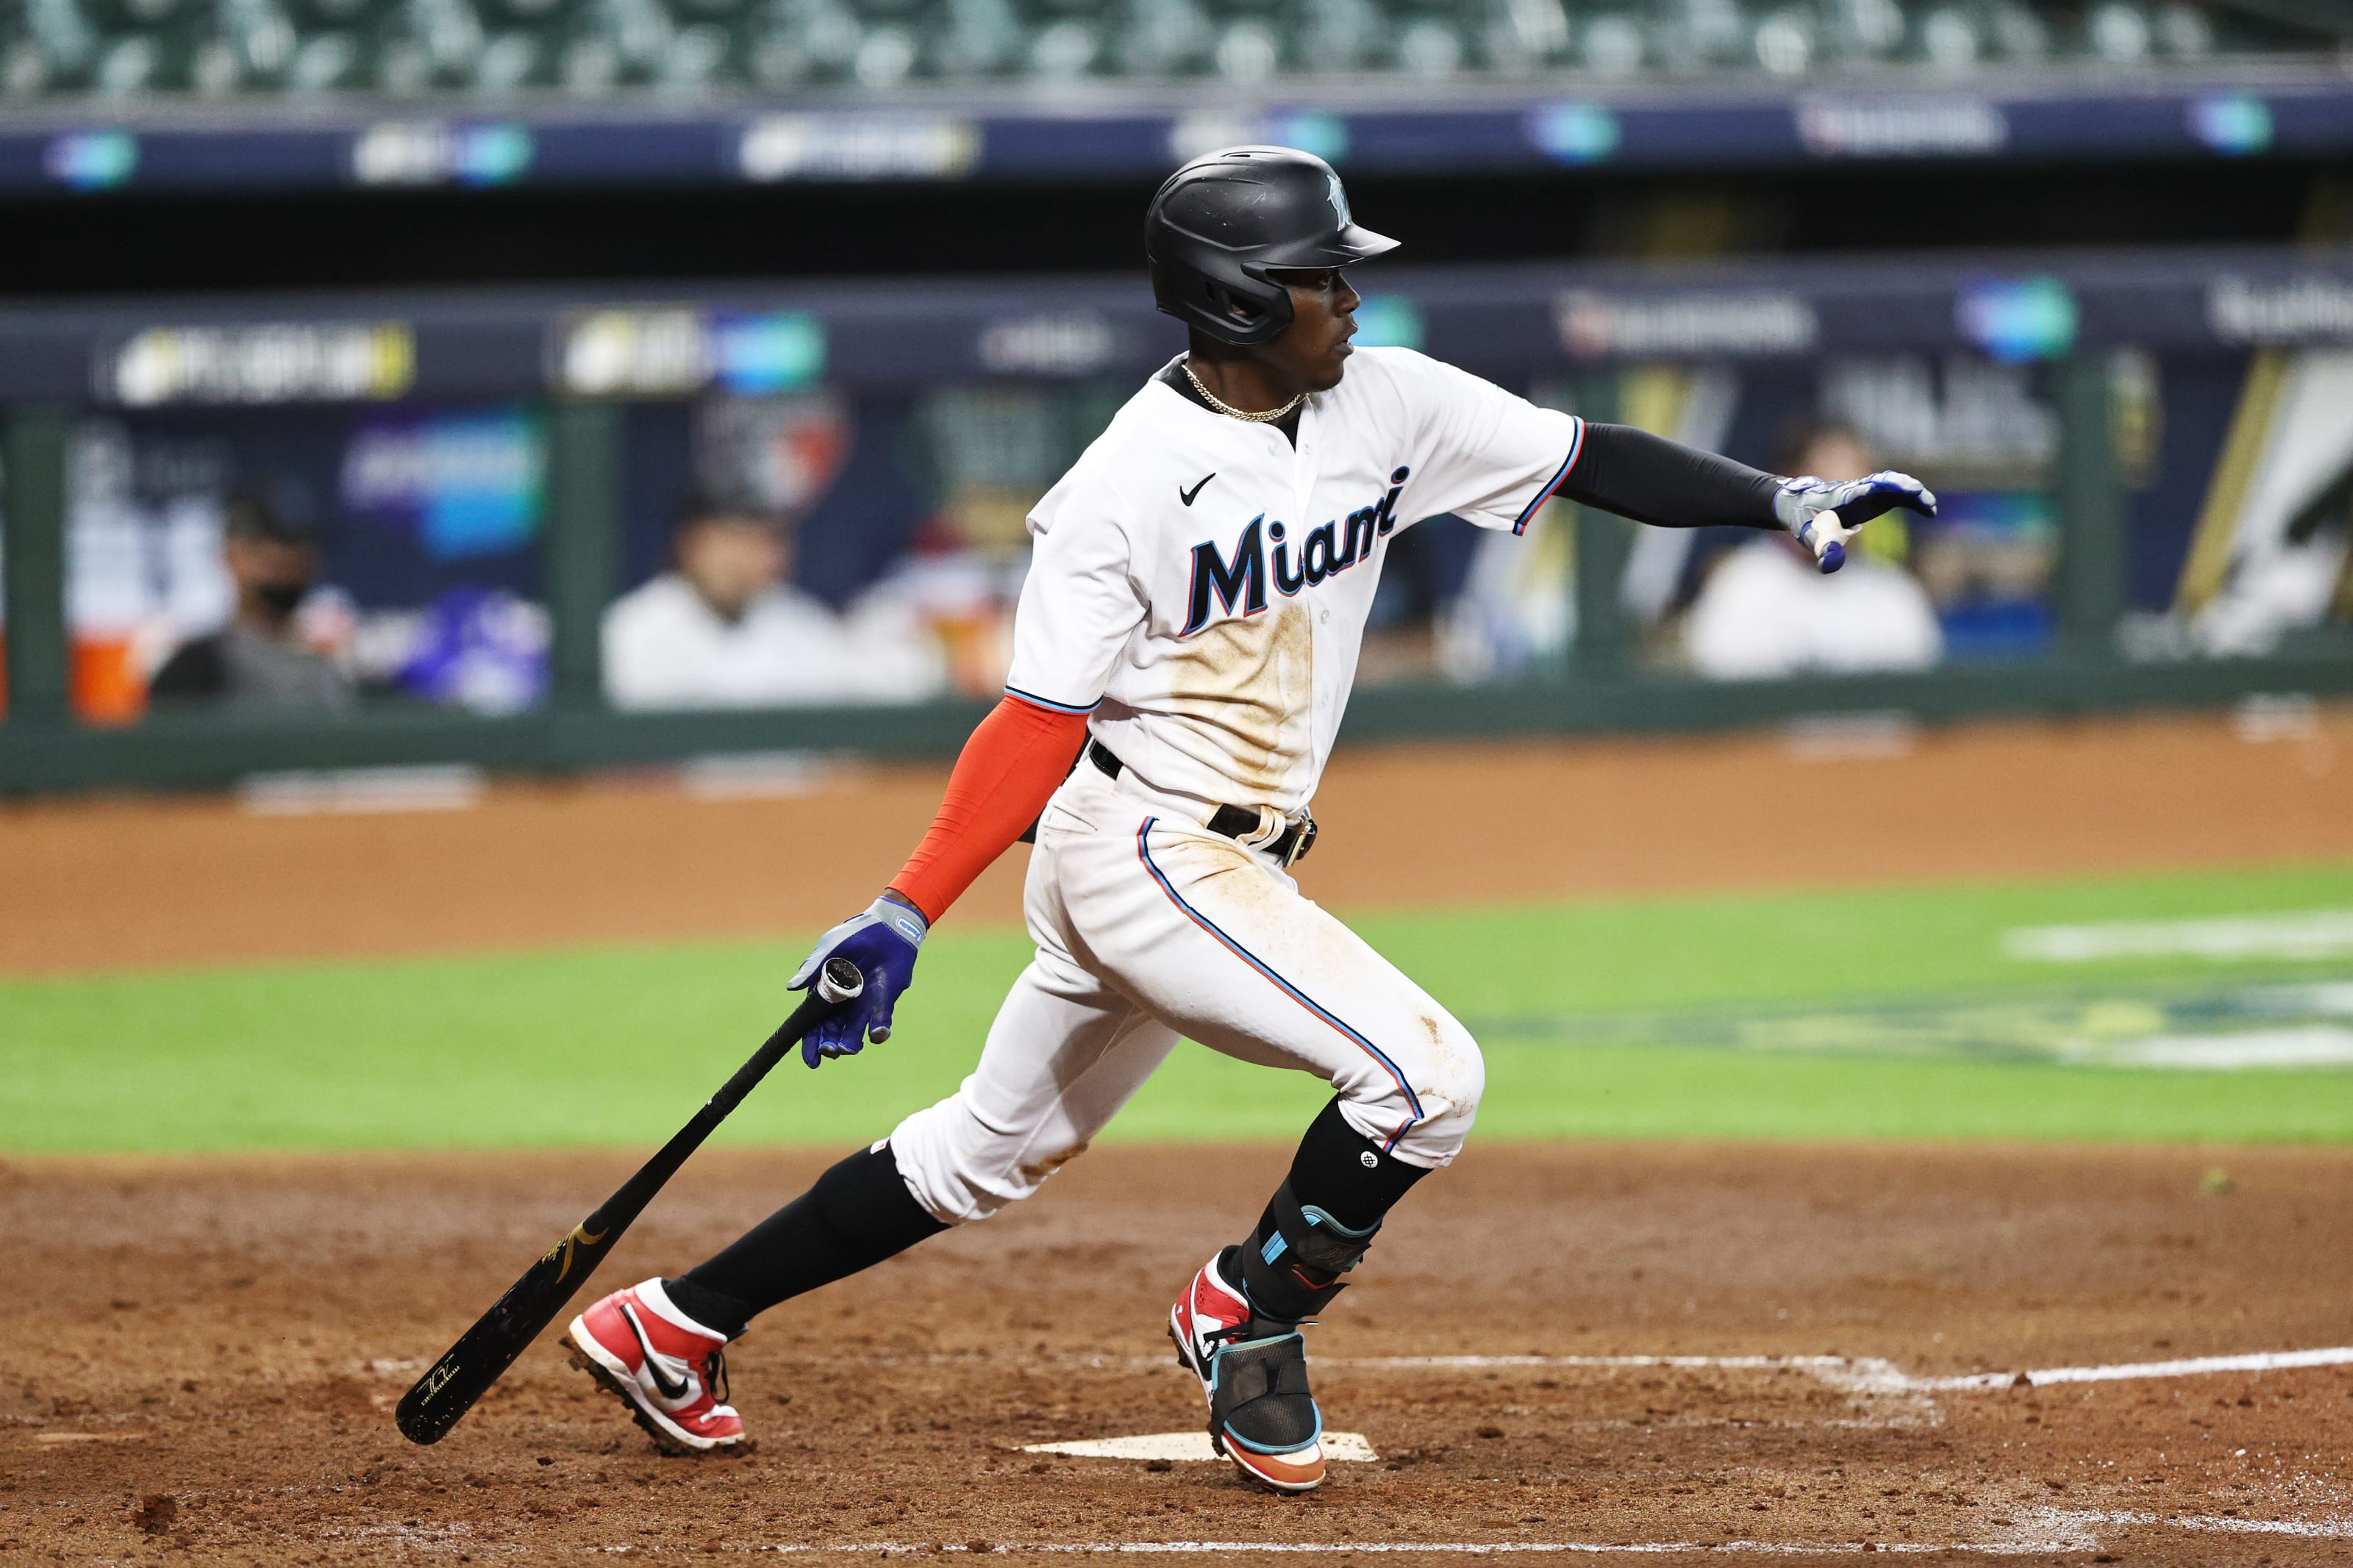 Miami Marlins, Jazz Chisholm